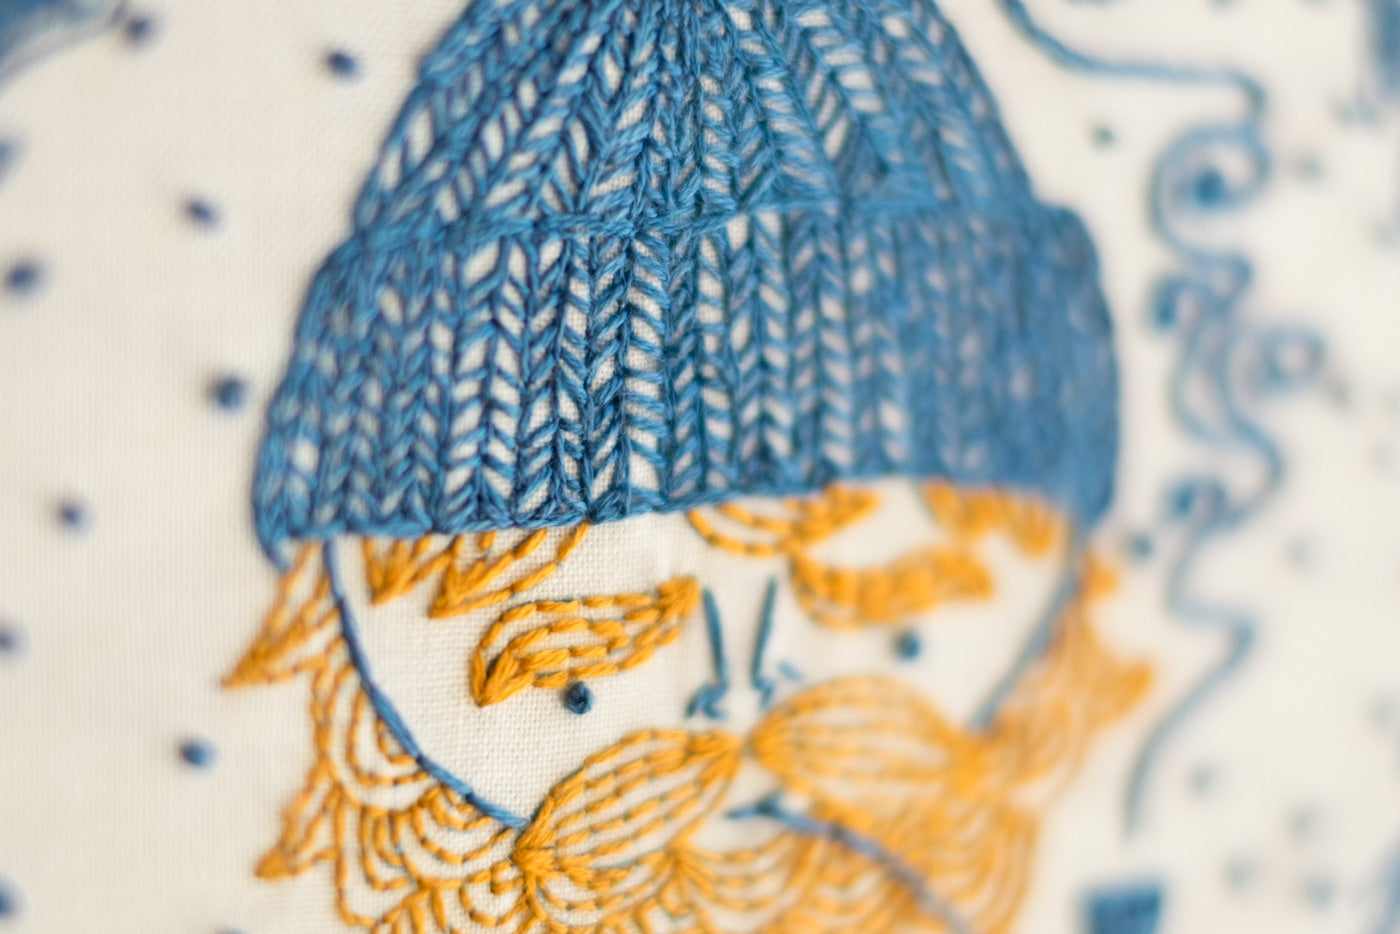 Detail of the Sea Captain's Hat